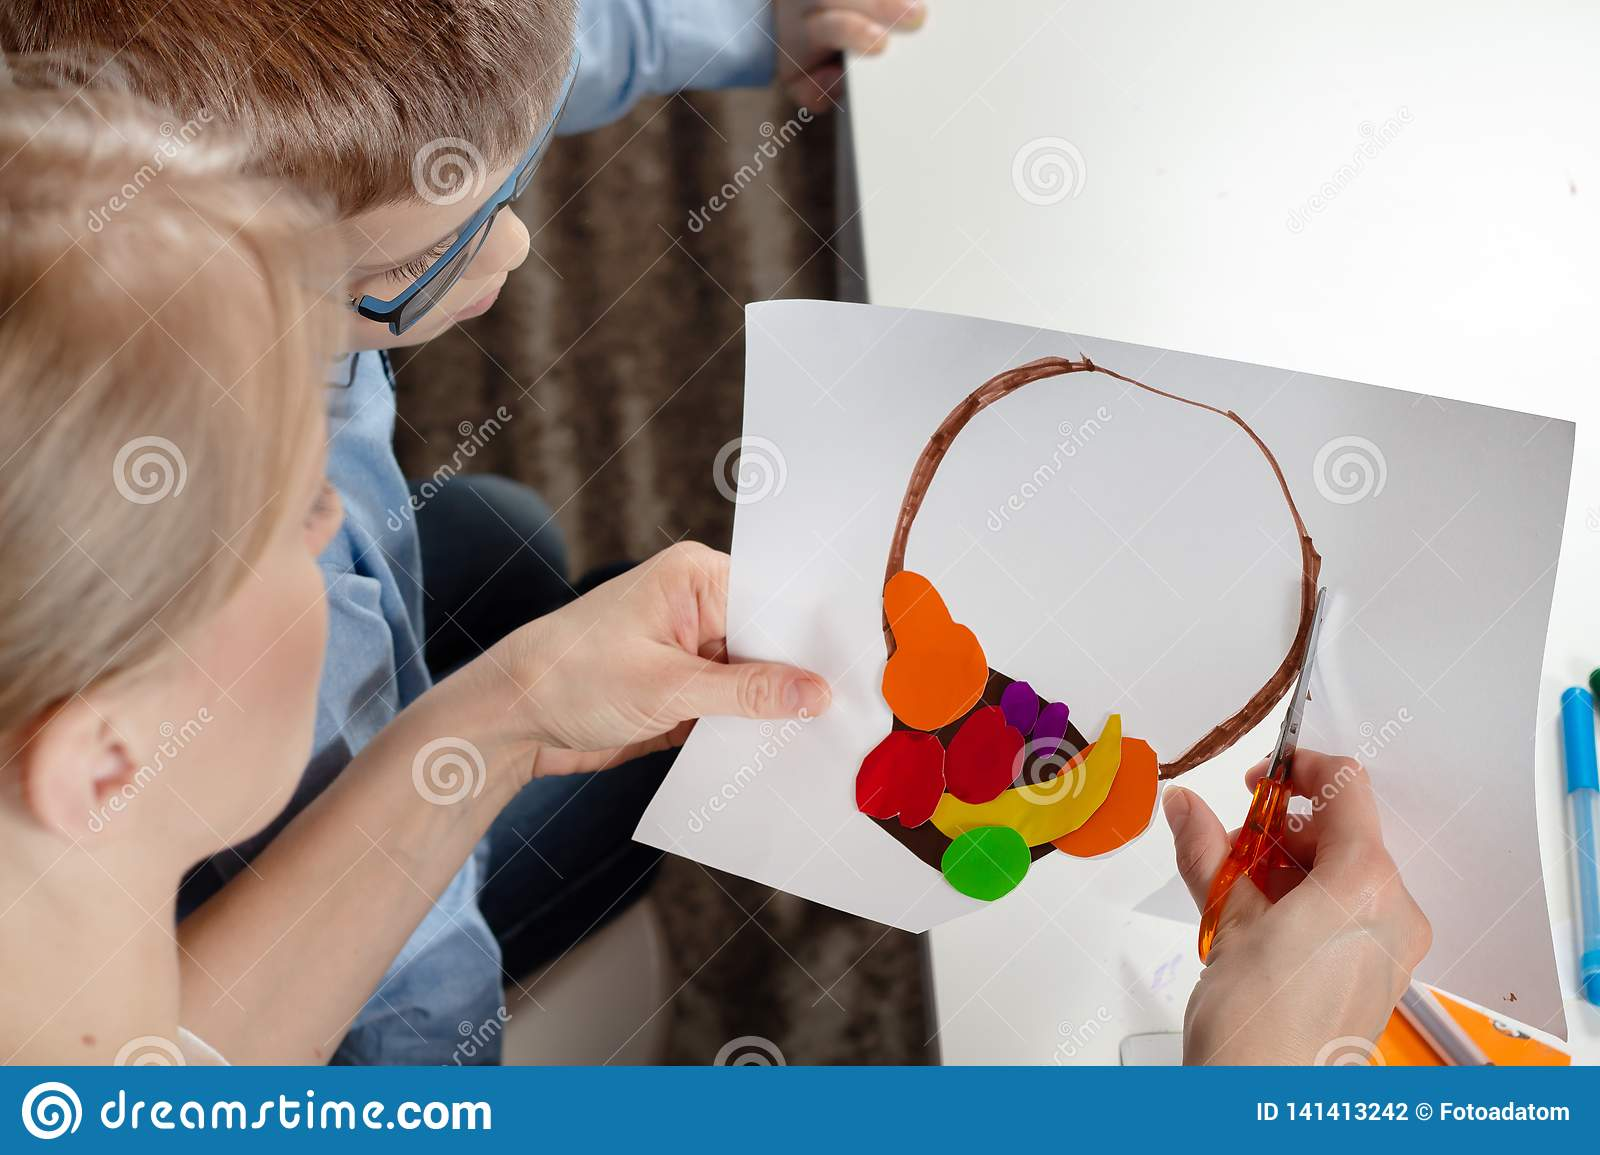 Boy in a blue shirt with mum. The boy`s mom cuts scissors with a plastic work done by a child.